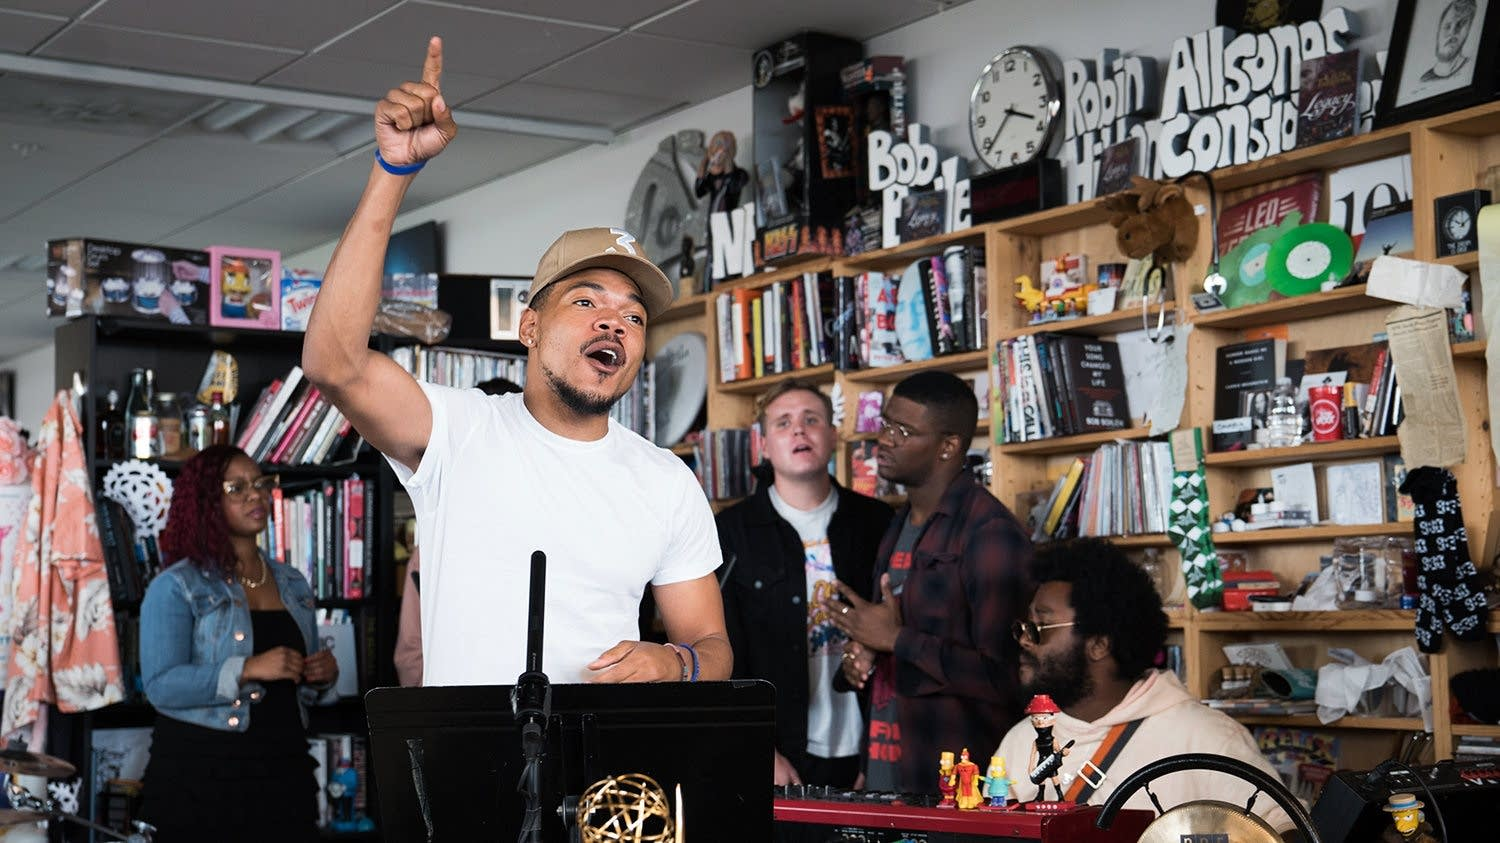 Chance the Rapper performs at NPR's Tiny Desk